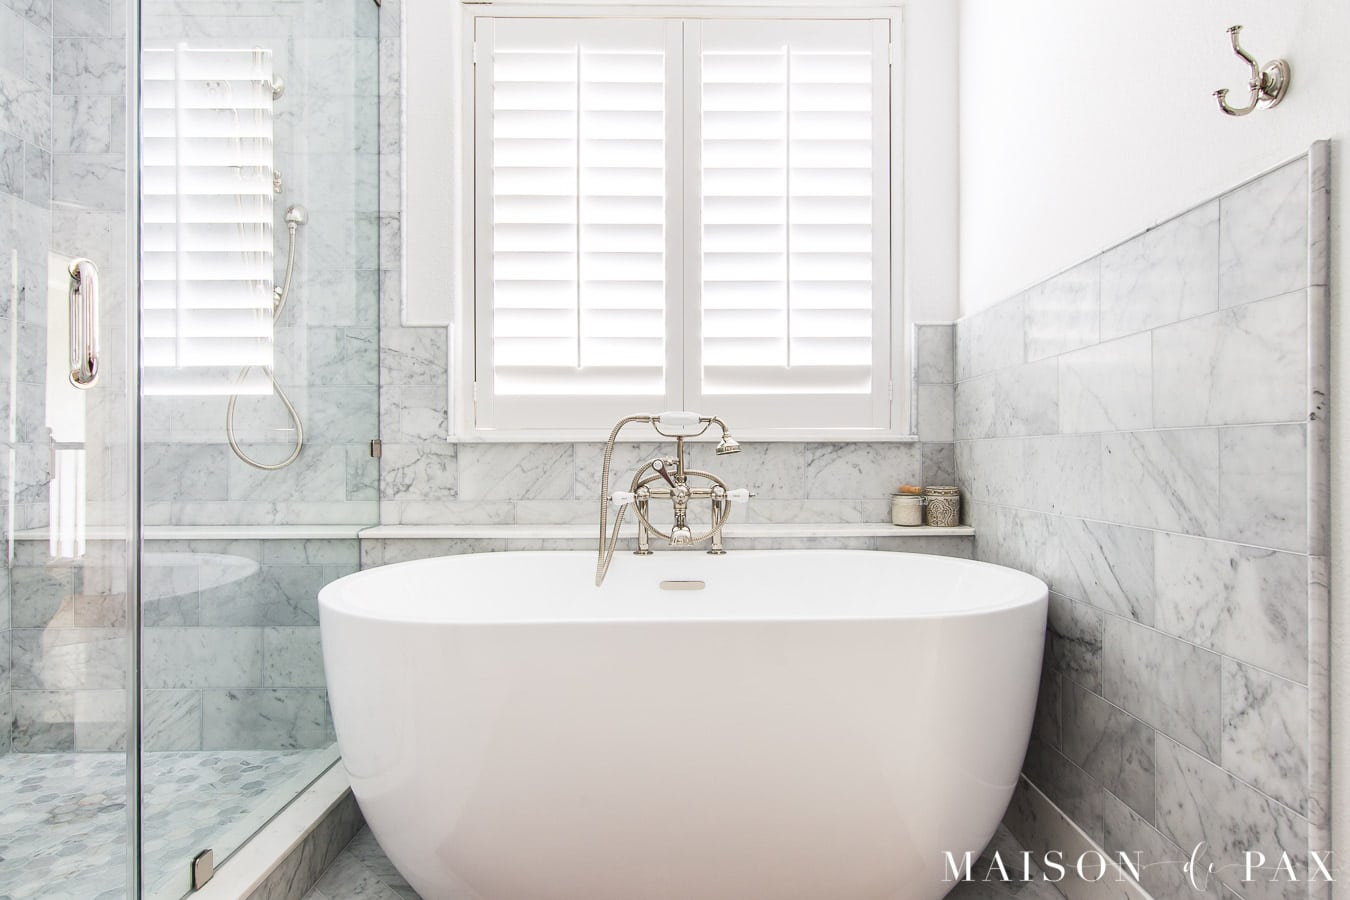 freestanding tub with Carrara marble tile surround | Maison de Pax